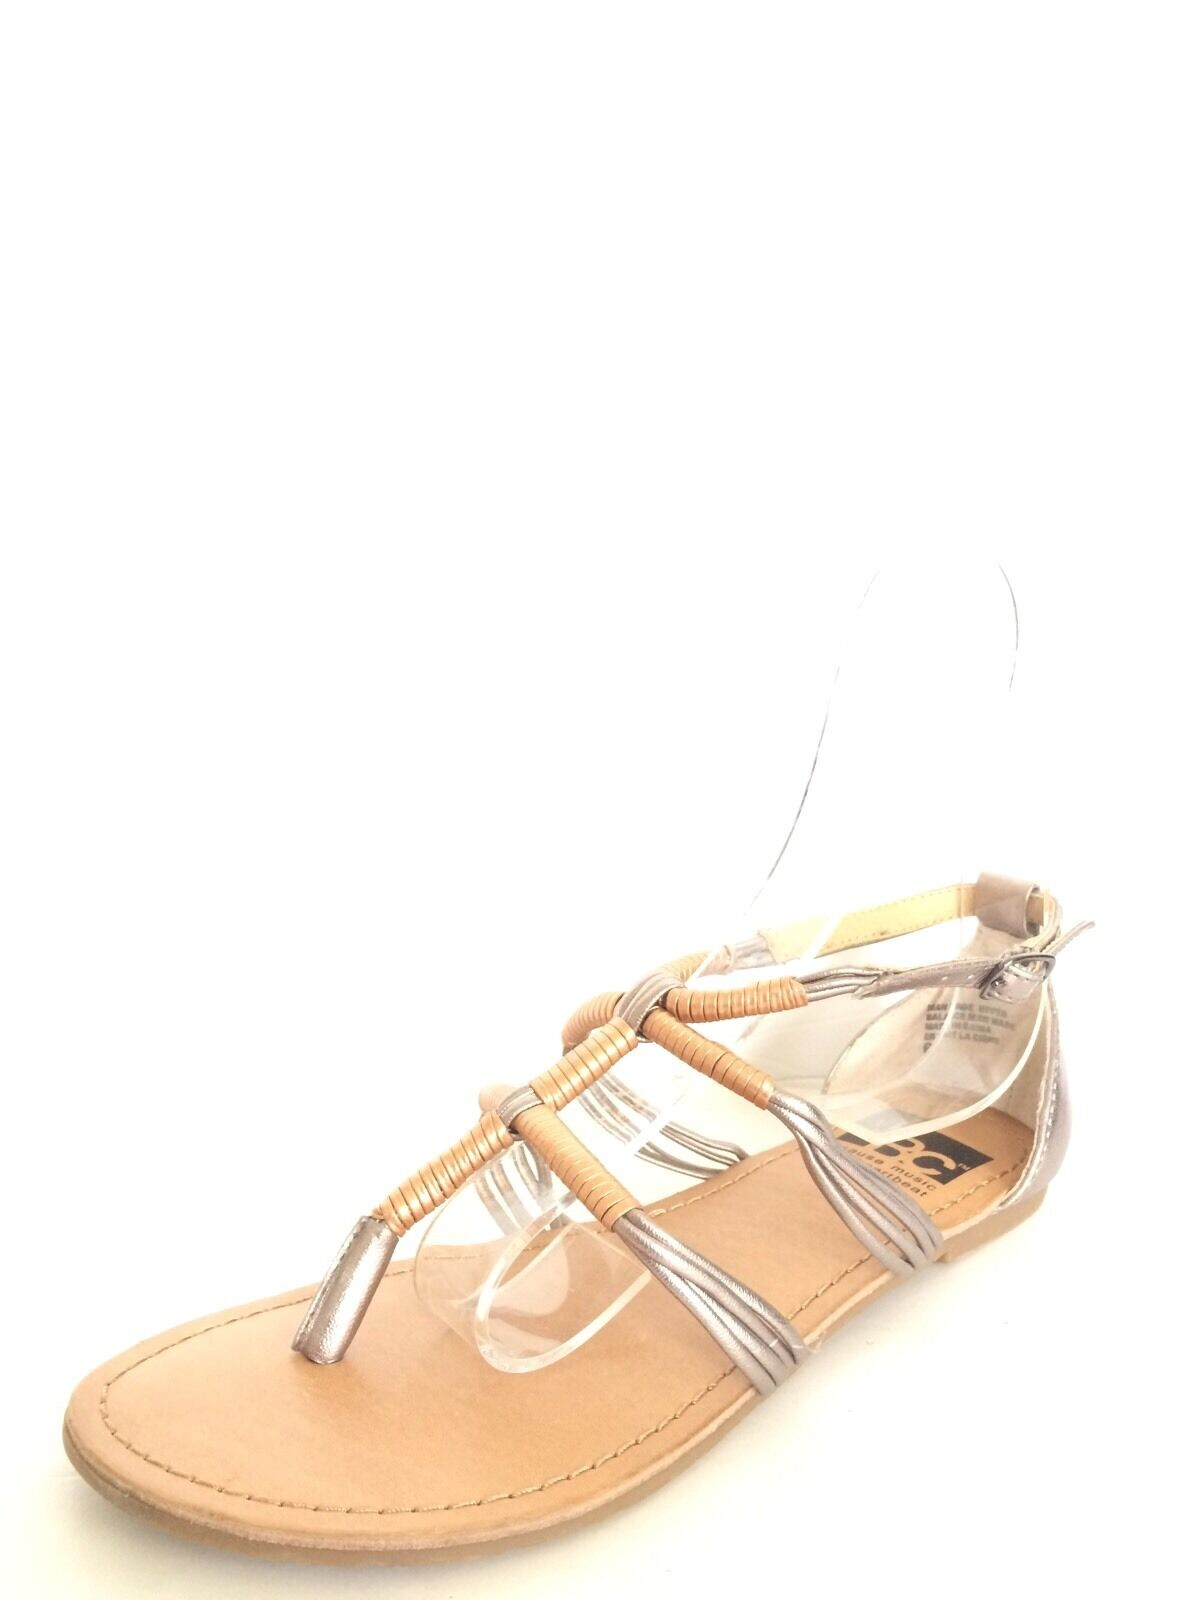 BC Footwear Womens Gold Braided Sandals Thong Flat Heel Comfort Womens Footwear Size 6 M* fd0c4a